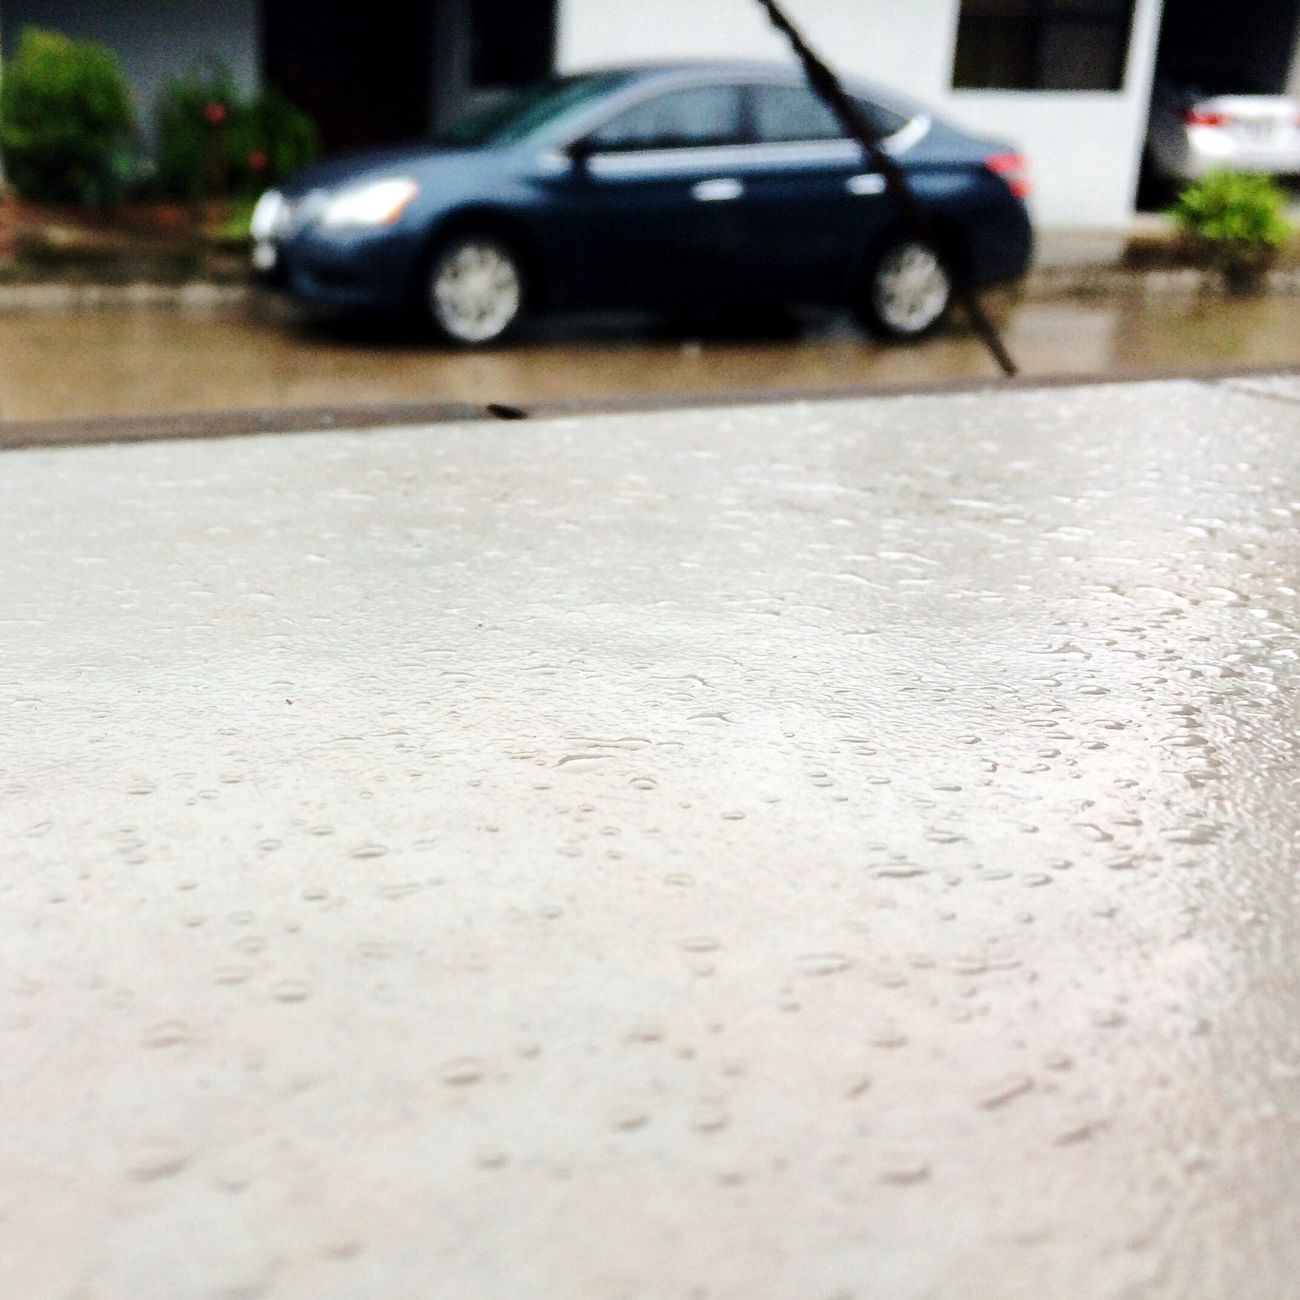 Car Rain Rainy Days Street No People Land Vehicle Mode Of Transport Outdoors Focus Transportation Food And Drink Rest & Relax Day Rainy Weather Rainy Casual Photography Streetphotography